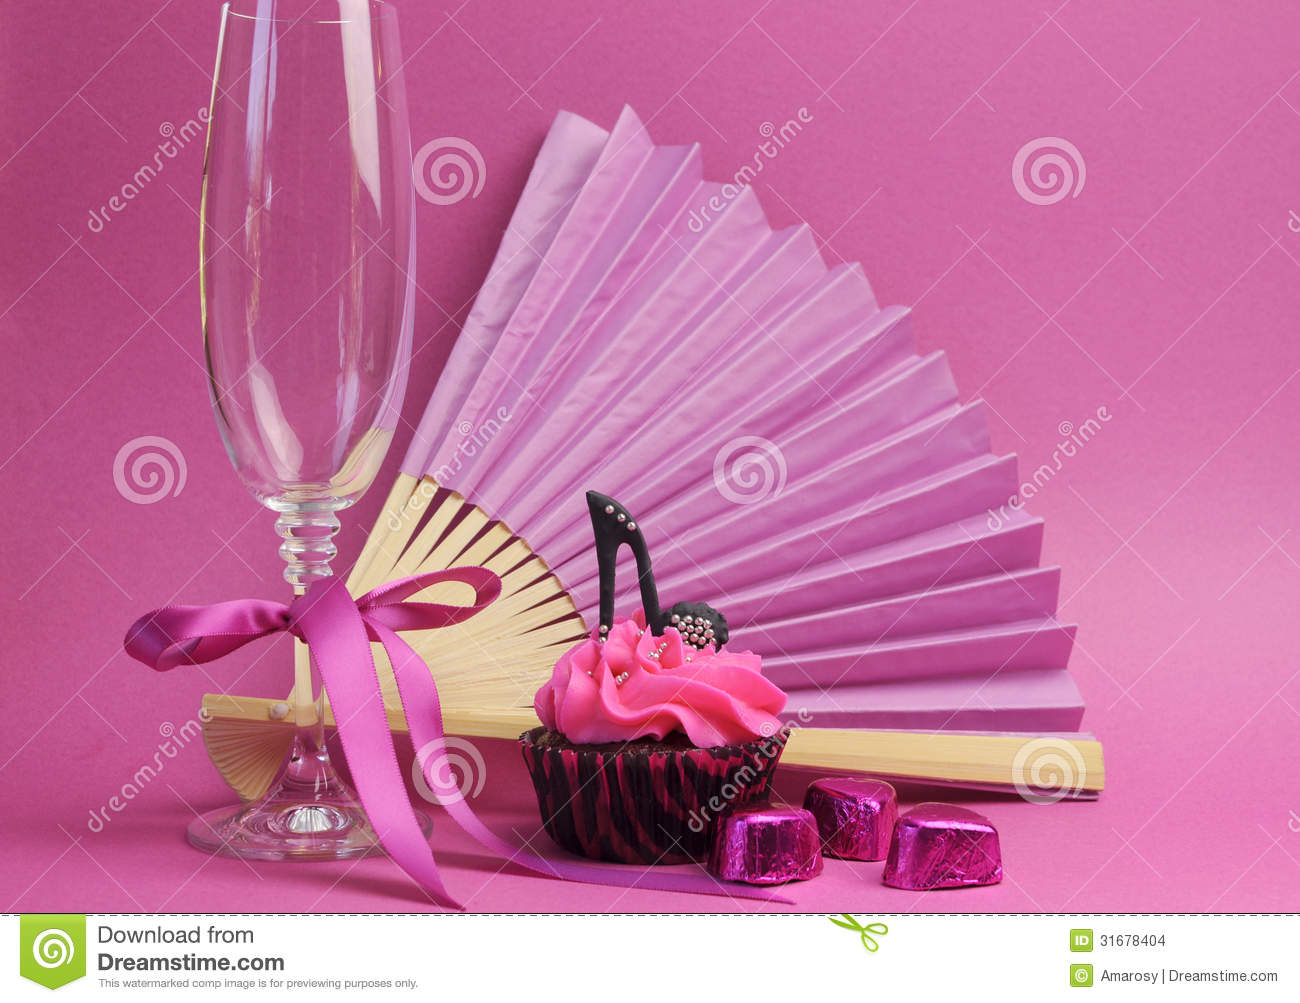 Pink Party Decorations With Fan, Champagne Glass And High Heel